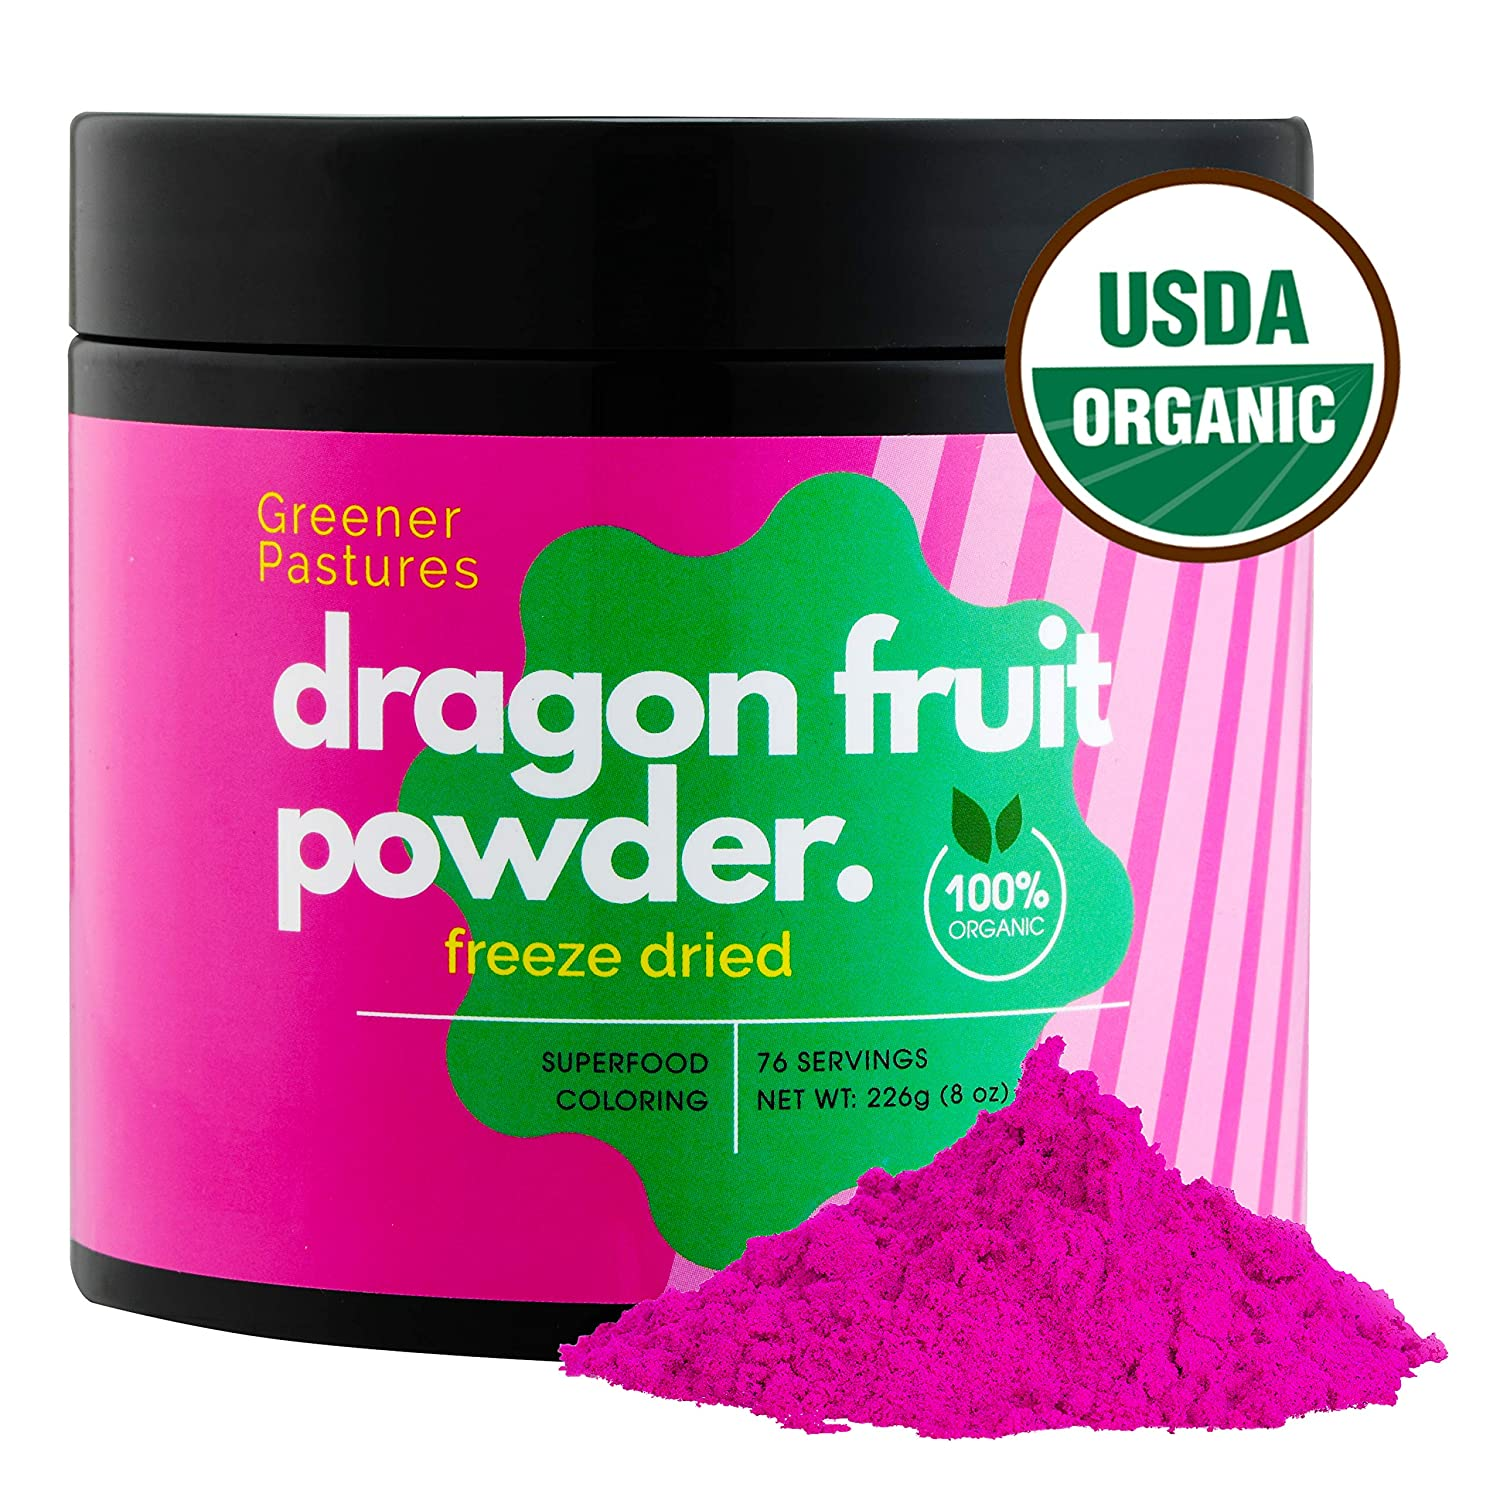 Organic Dragon Fruit Pitaya Powder Superfood (8 oz) Pure Natural Food  Coloring, Freeze Dried by Greener Pastures